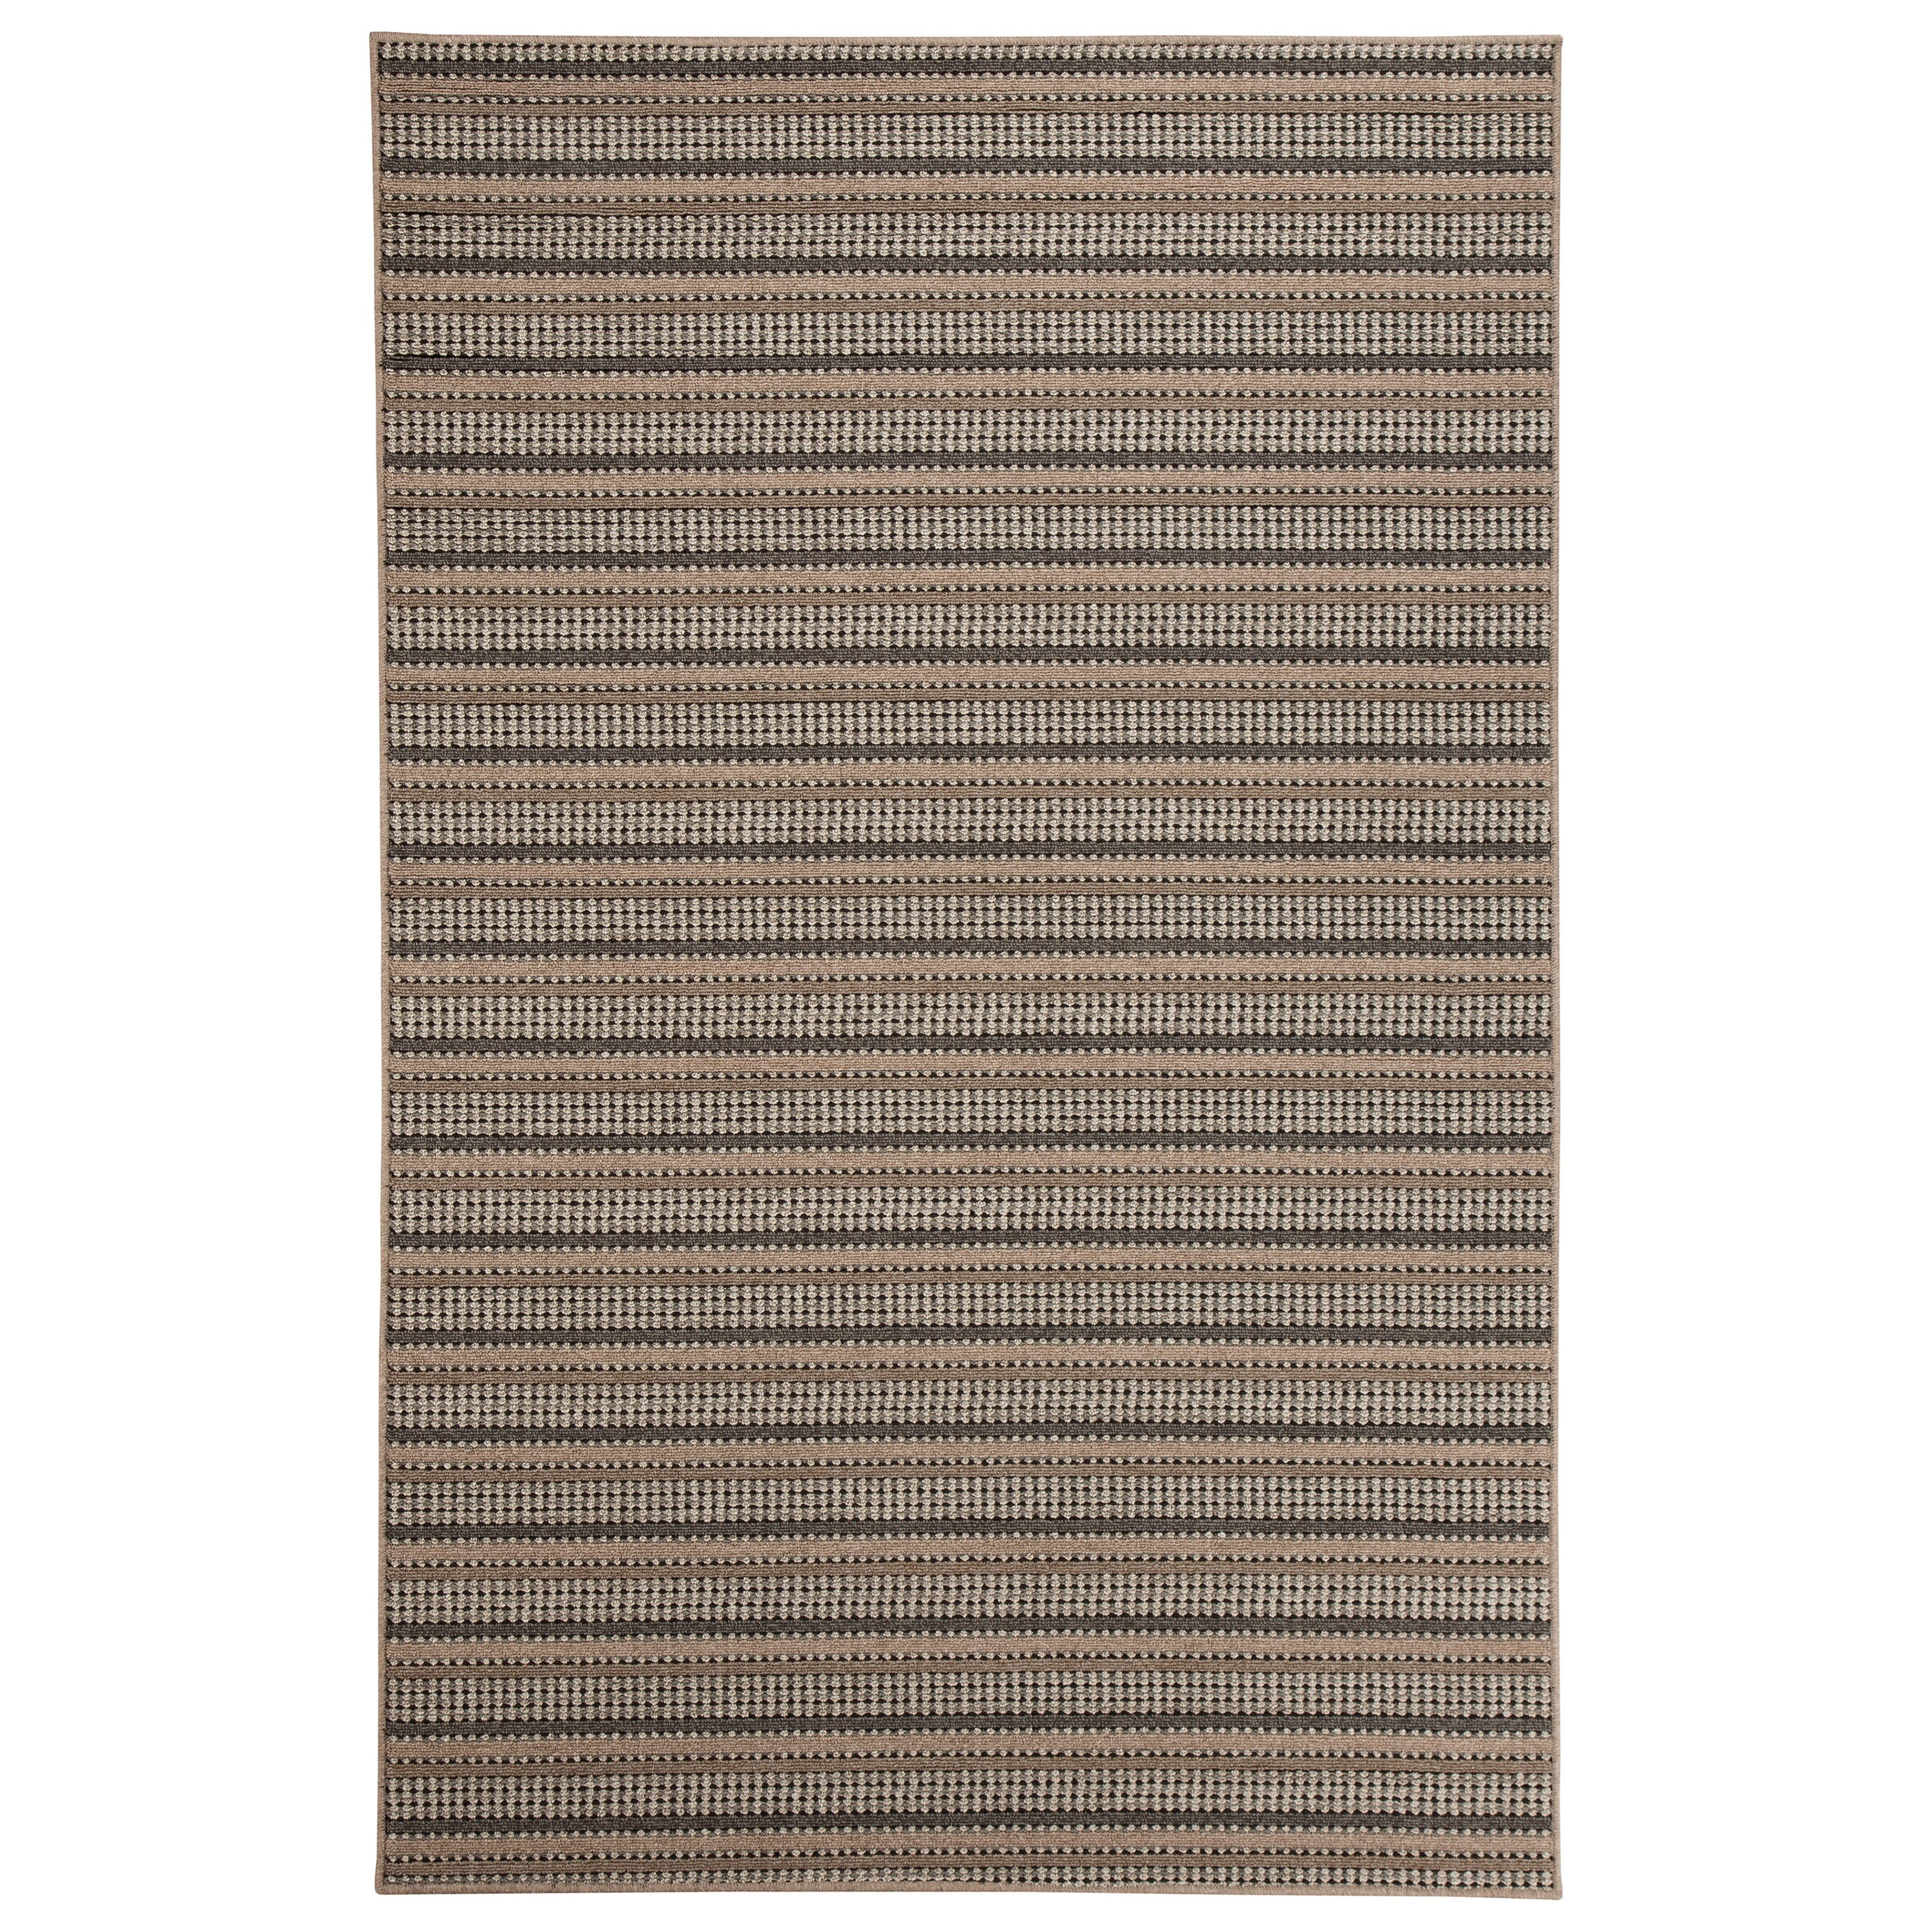 Signature Design by Ashley Transitional Area Rugs Kyley Taupe Medium Rug - Item Number: R401152